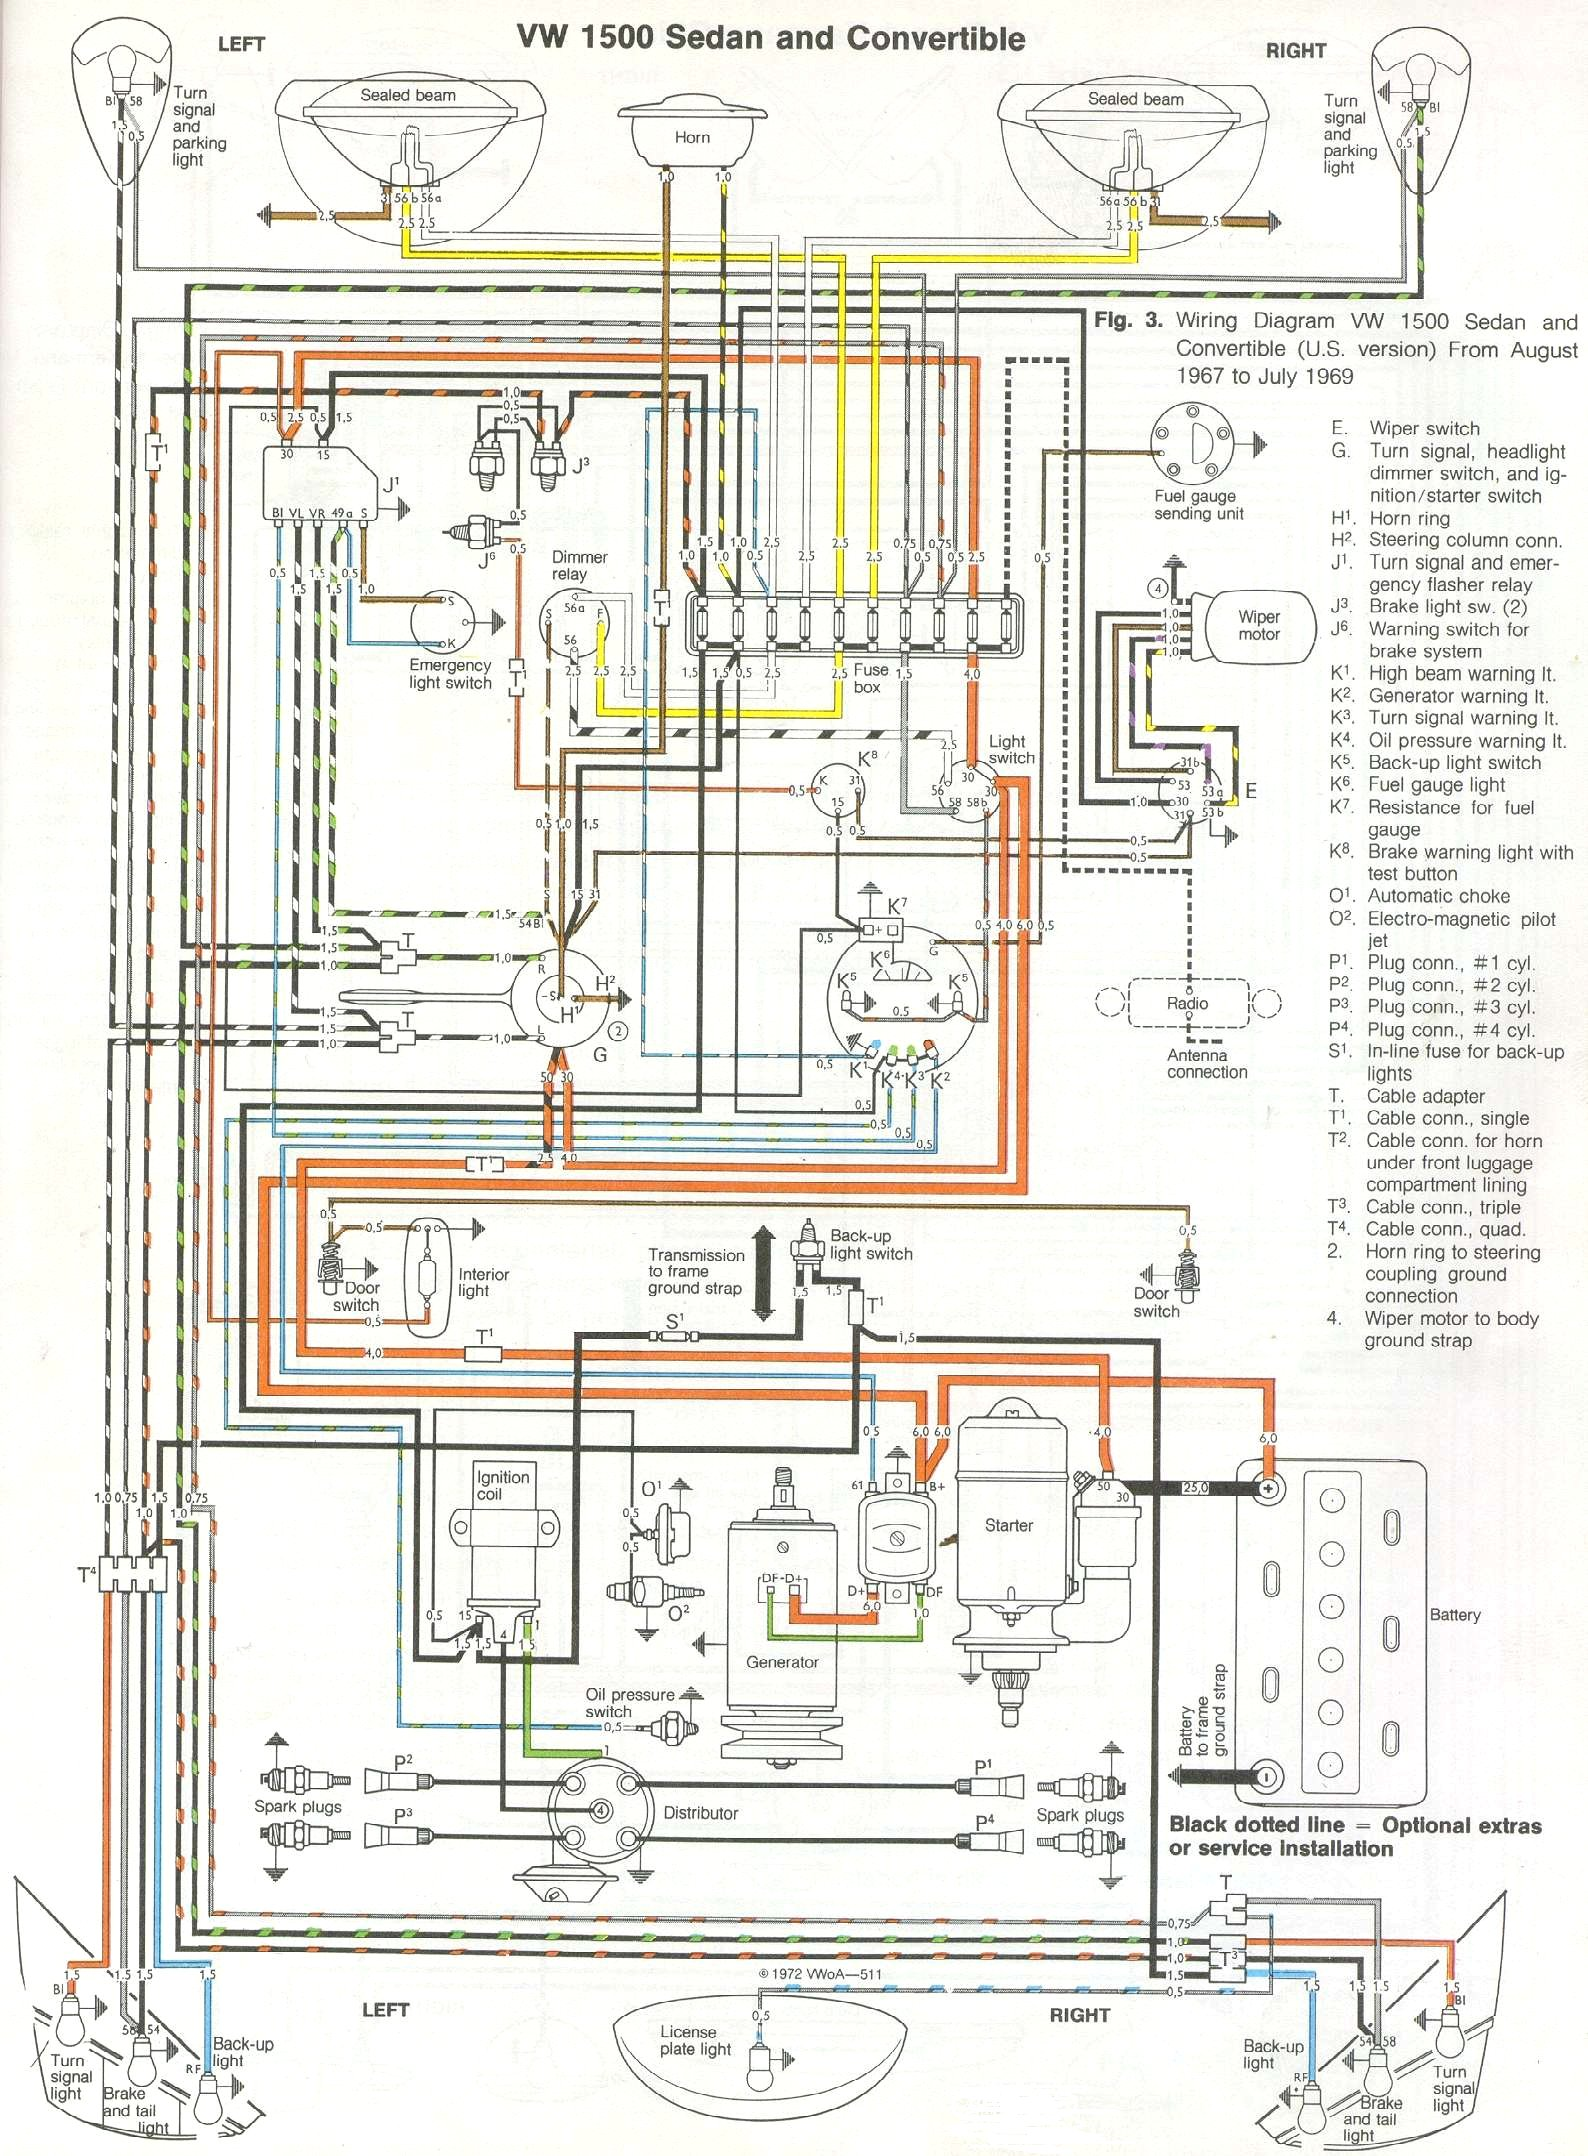 bug_6869 1969 71 beetle wiring diagram thegoldenbug com 1971 vw beetle wiring diagram at aneh.co